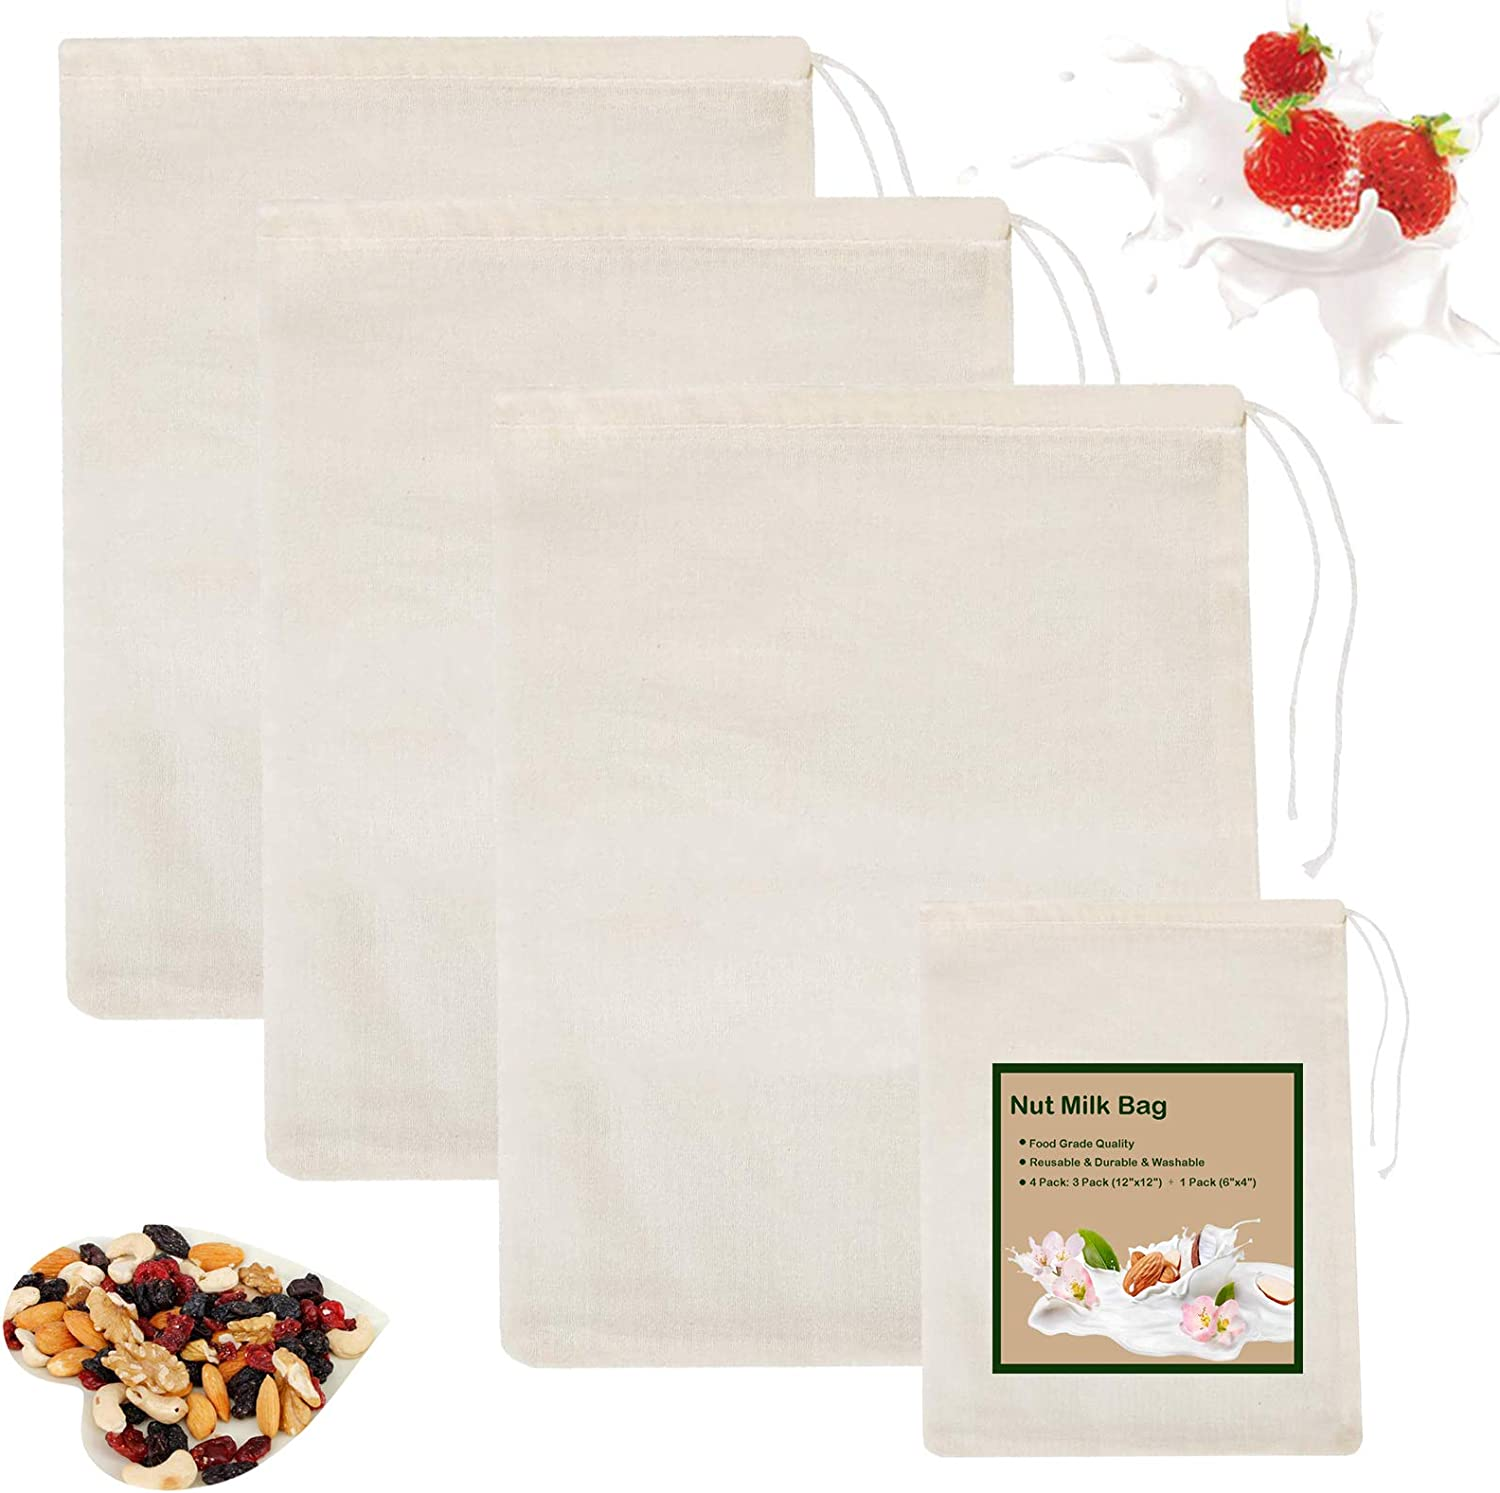 Nut Milk Bag for Straining, Cheesecloth Reusable Cold Brew Coffee Cheese Cloths Strainer Large Celery Juice, Oat Milk, Almond Milk, Yogurt Cotton Fine Mesh Filter Bags